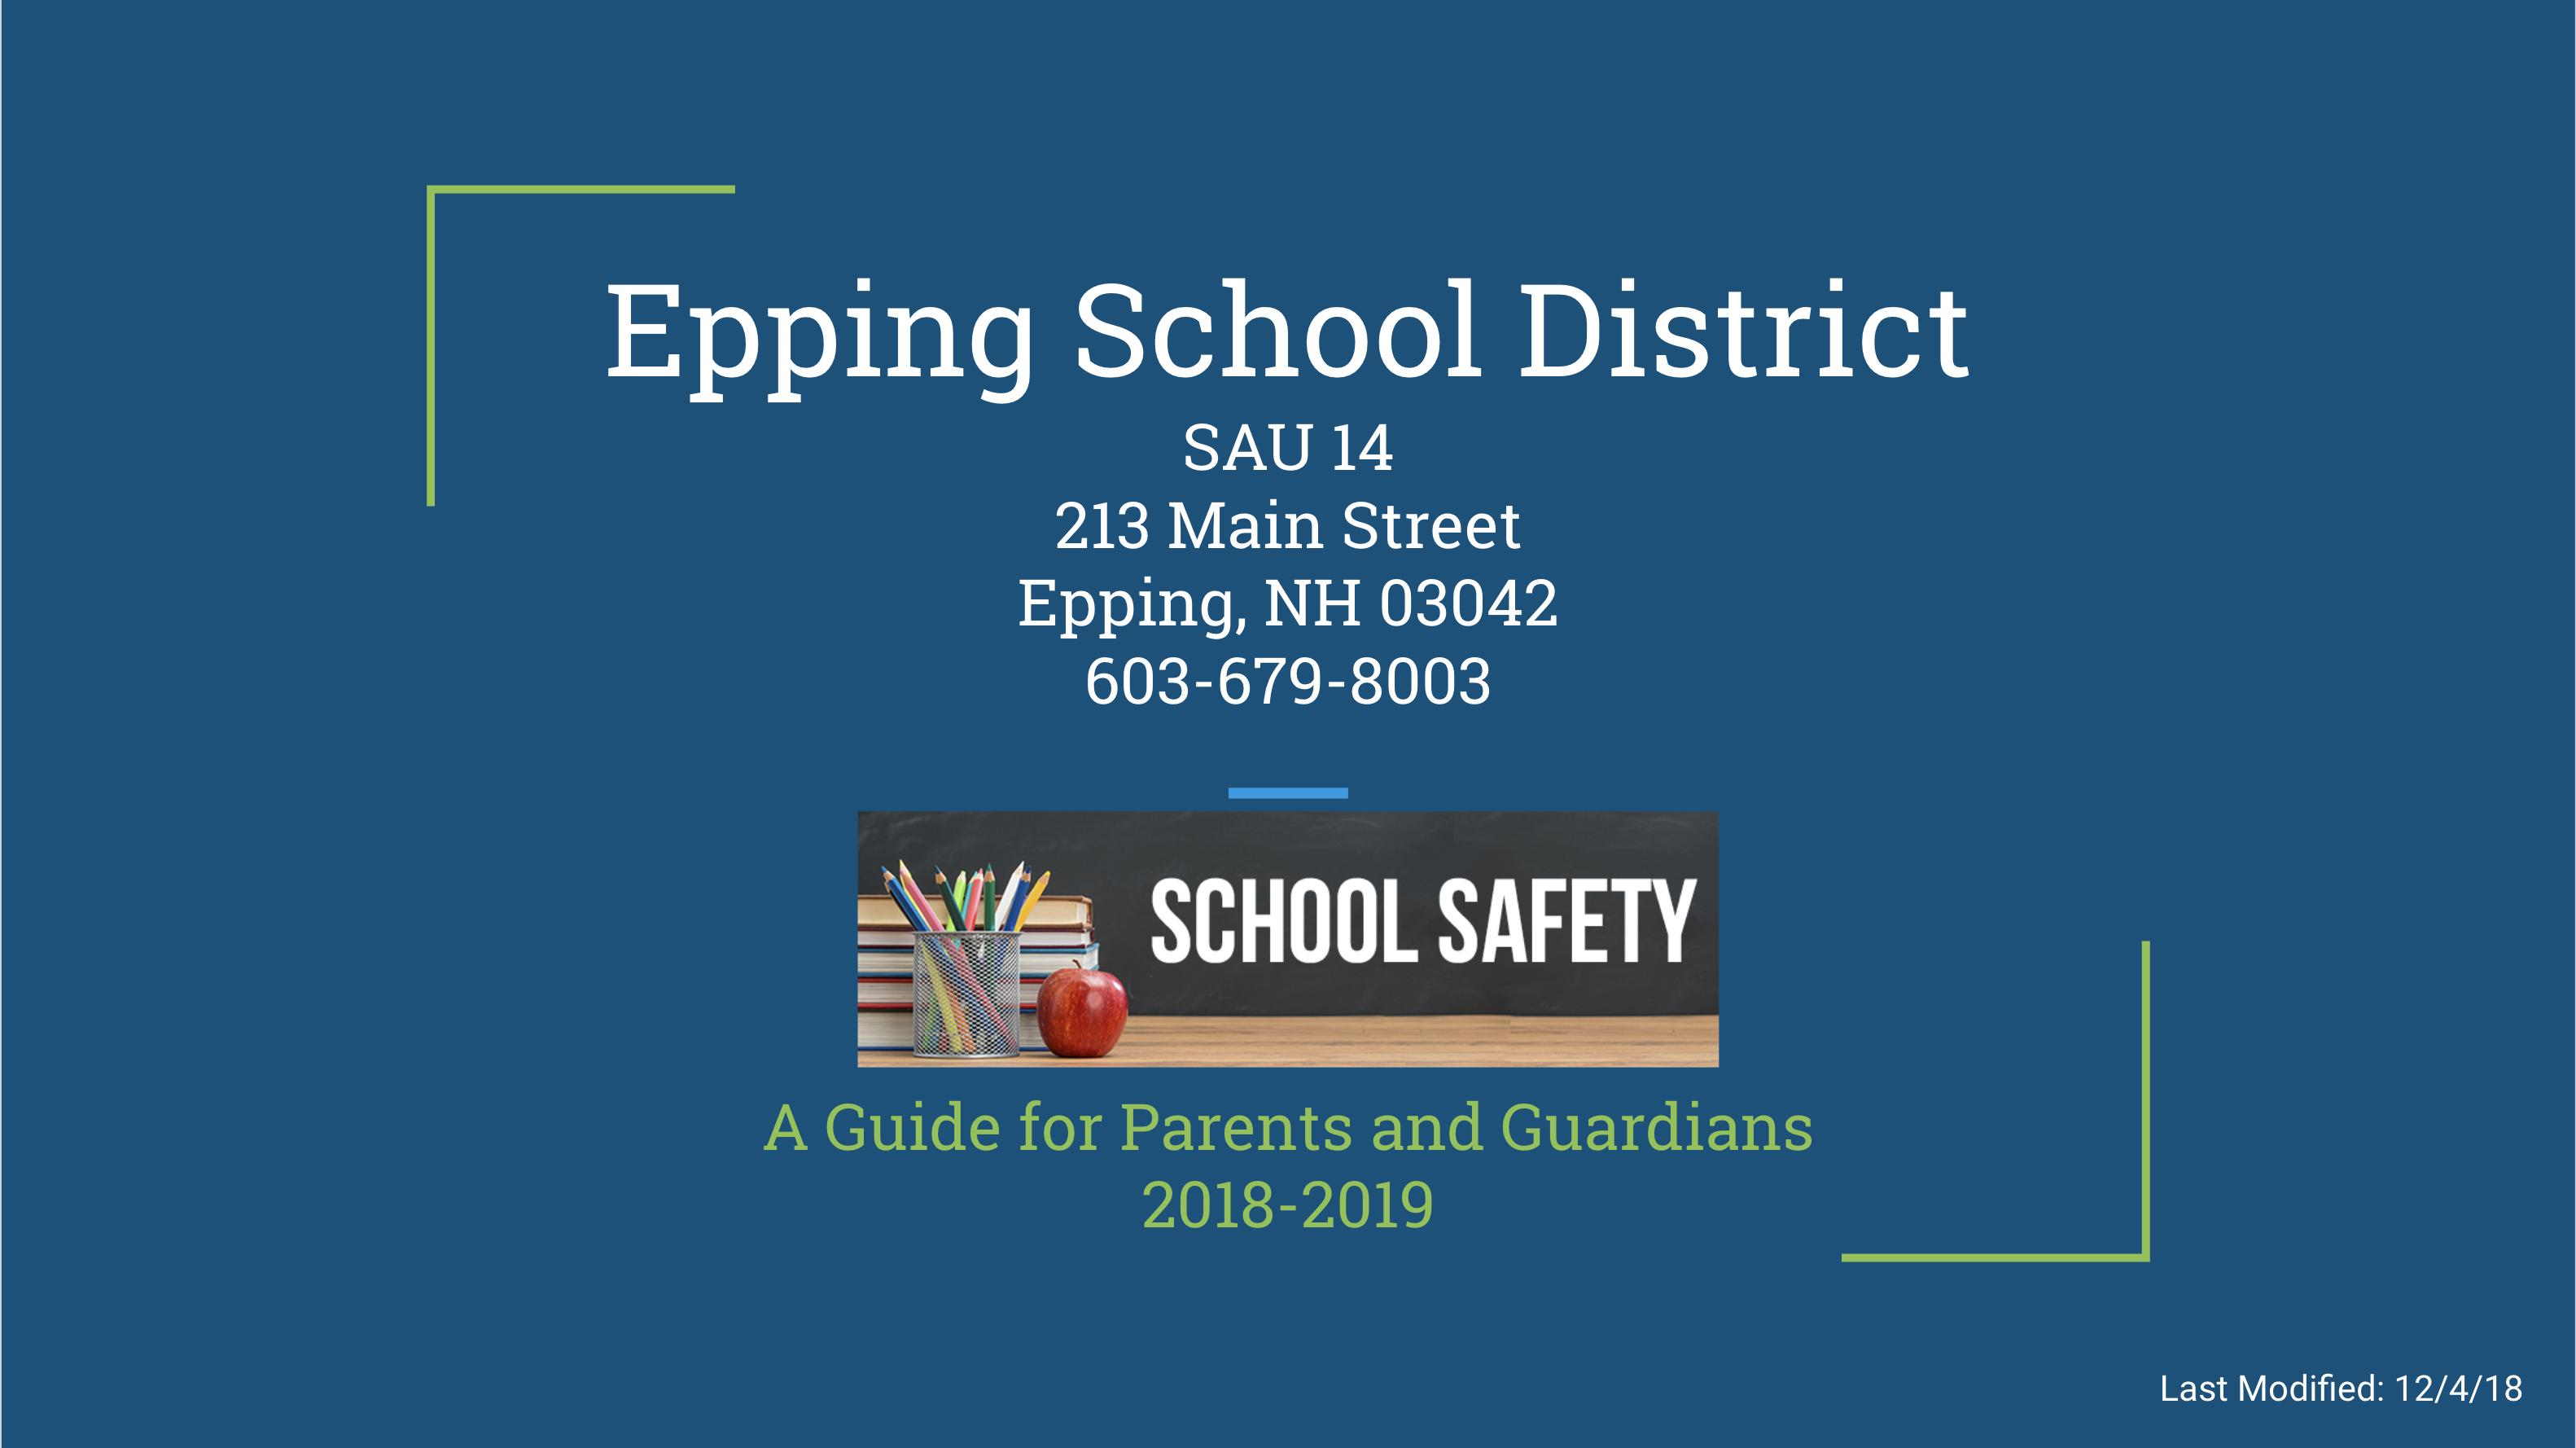 School Safety Brochure